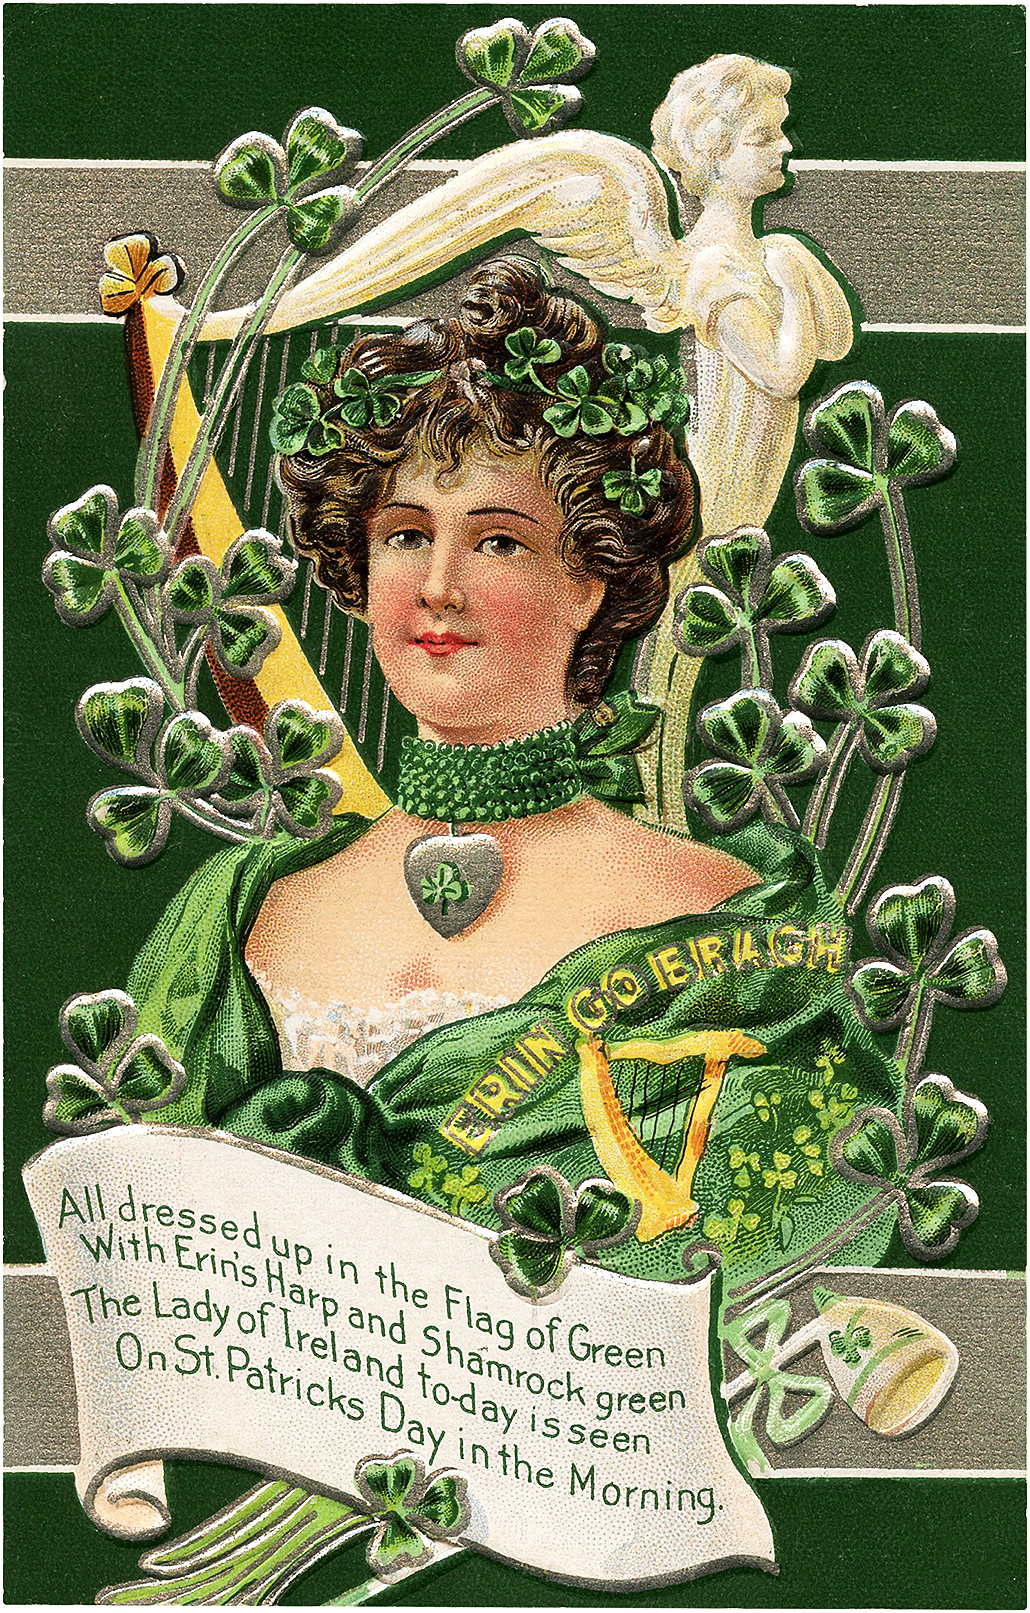 Vintage Lady of Ireland Image